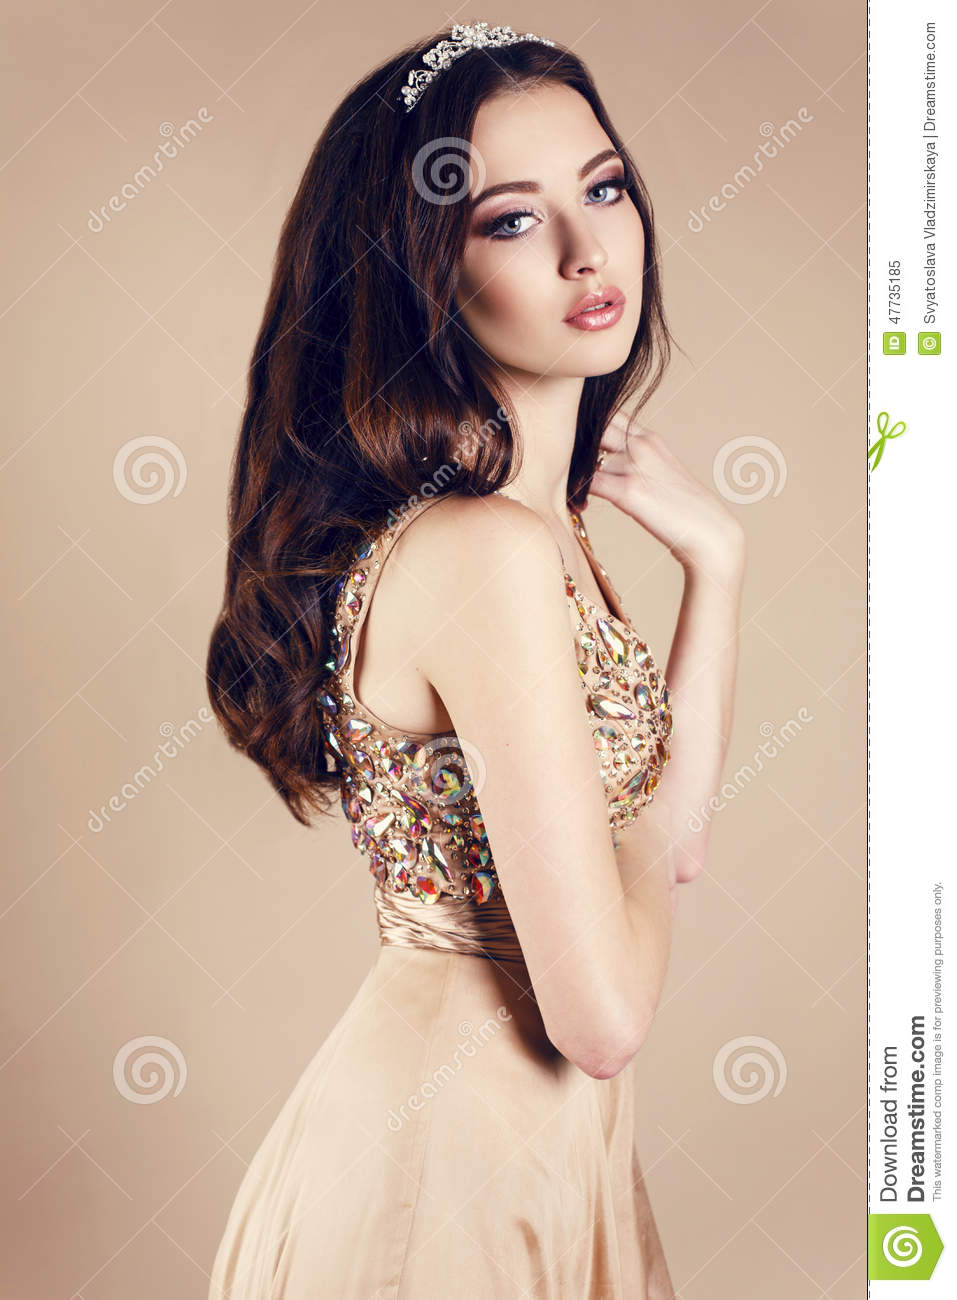 Beautiful girl with dark hair in luxurious sequin dress and crown